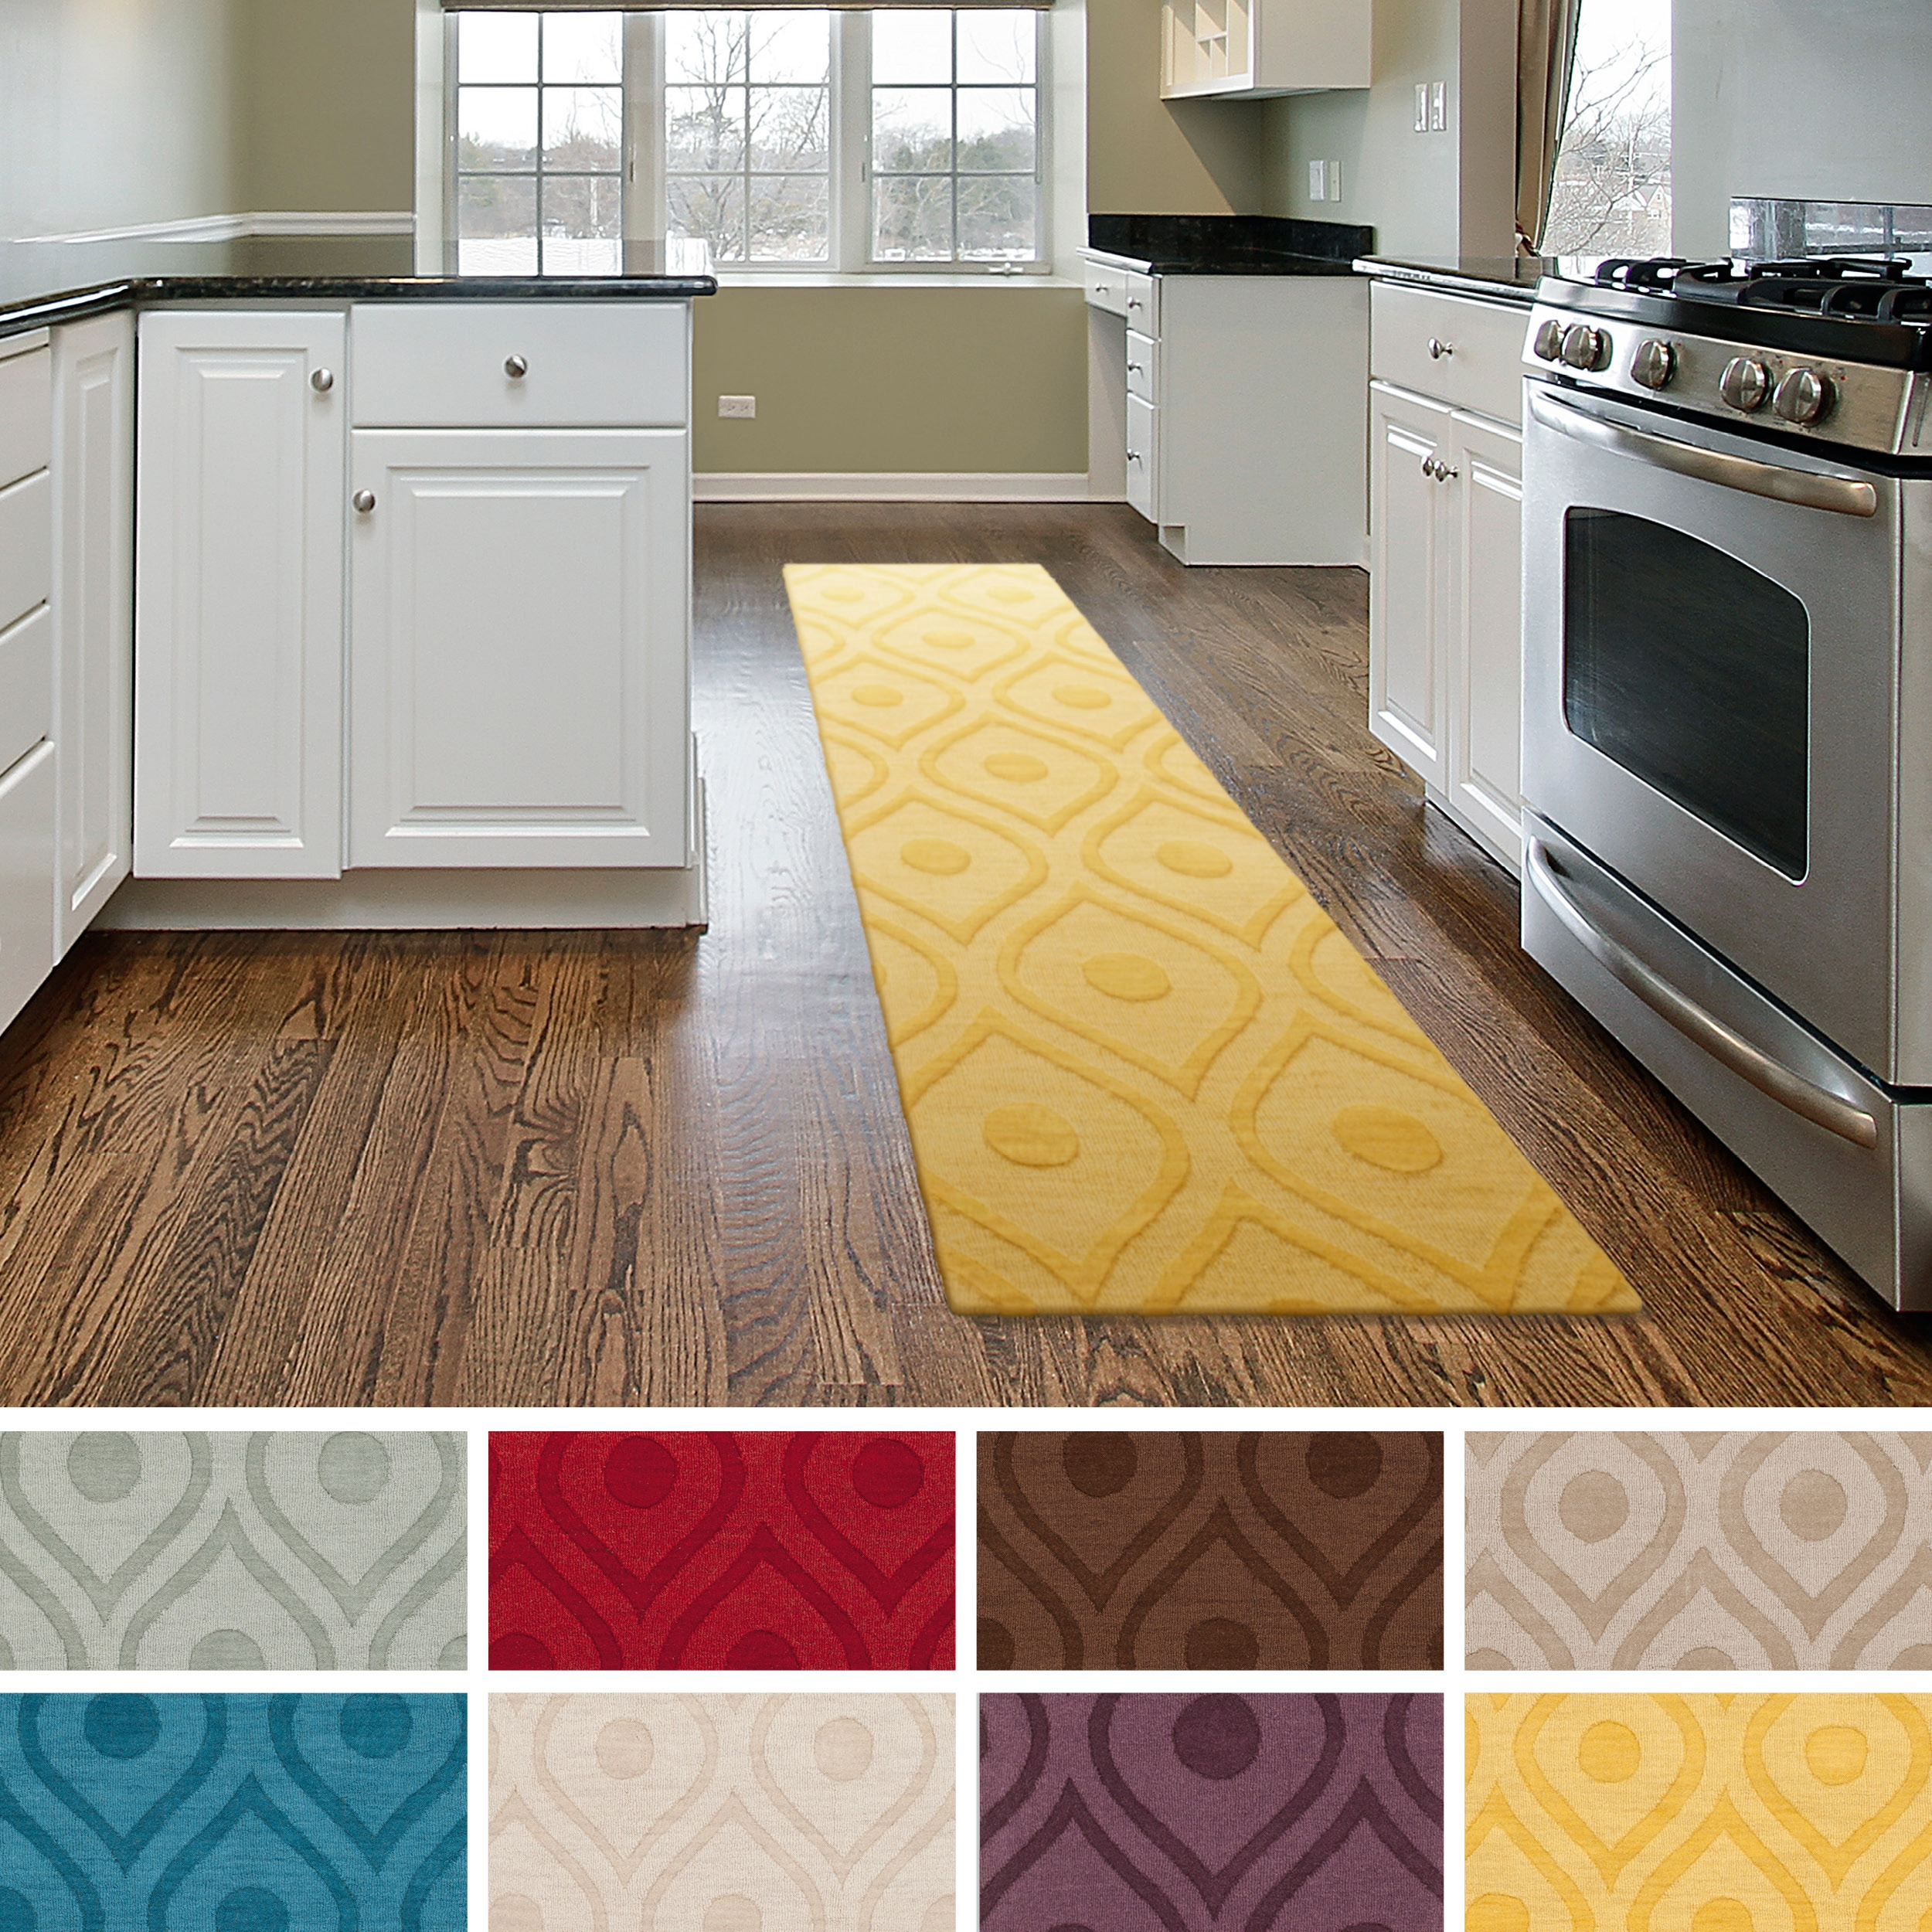 Amazing Kitchen Floor Rug Gallery Best Room Decorating Ideas For Custom Made Rug Runners (Image 3 of 15)